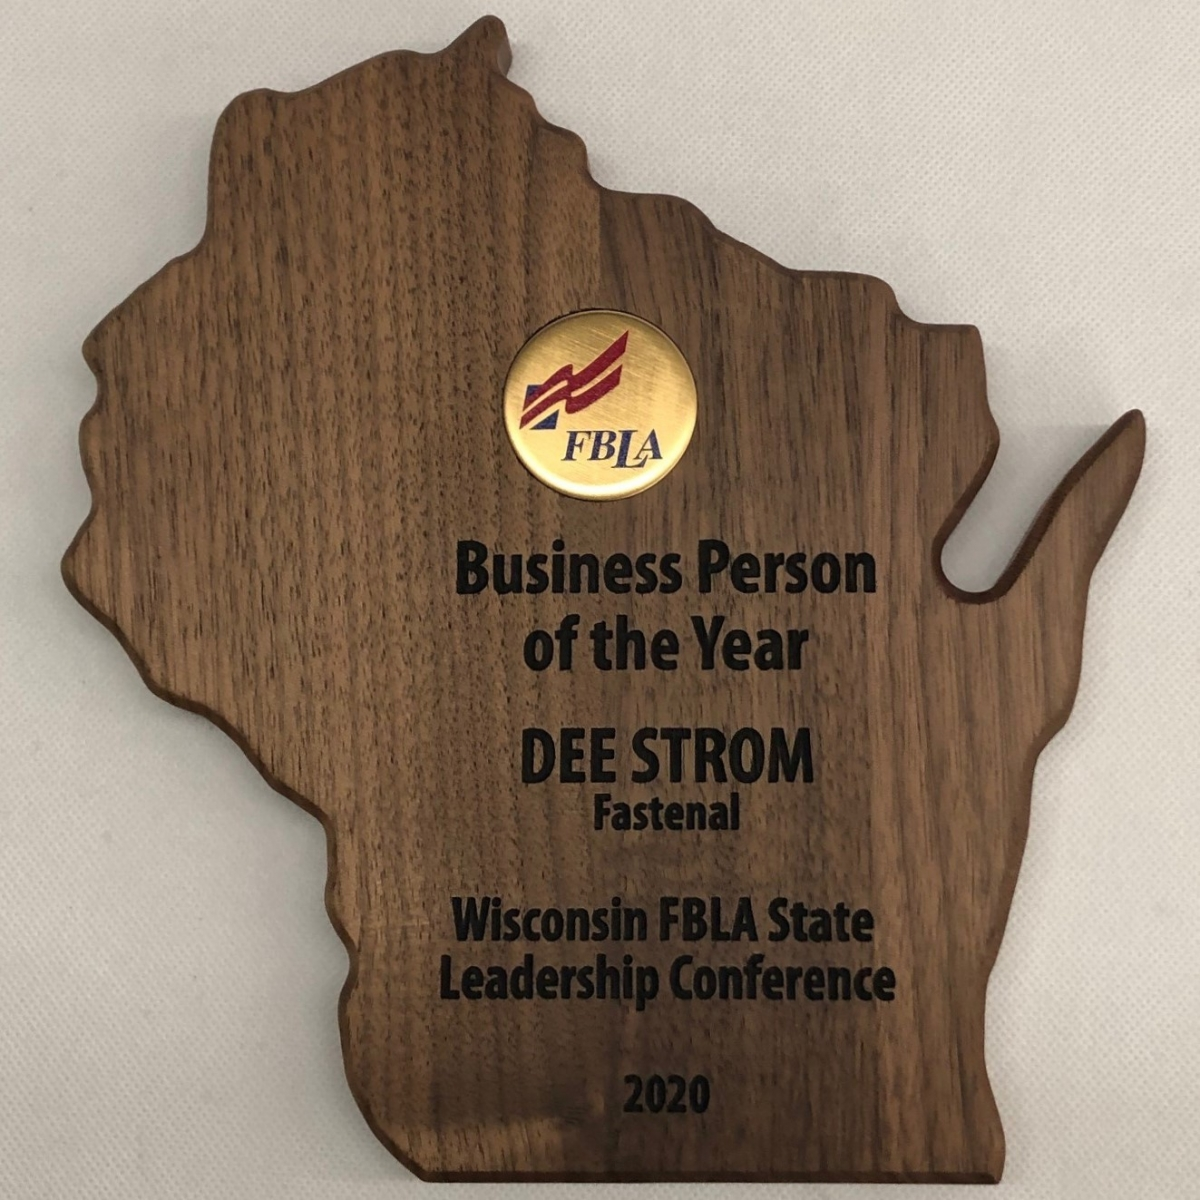 Business Person of the Year - Dee Strom Fastenall